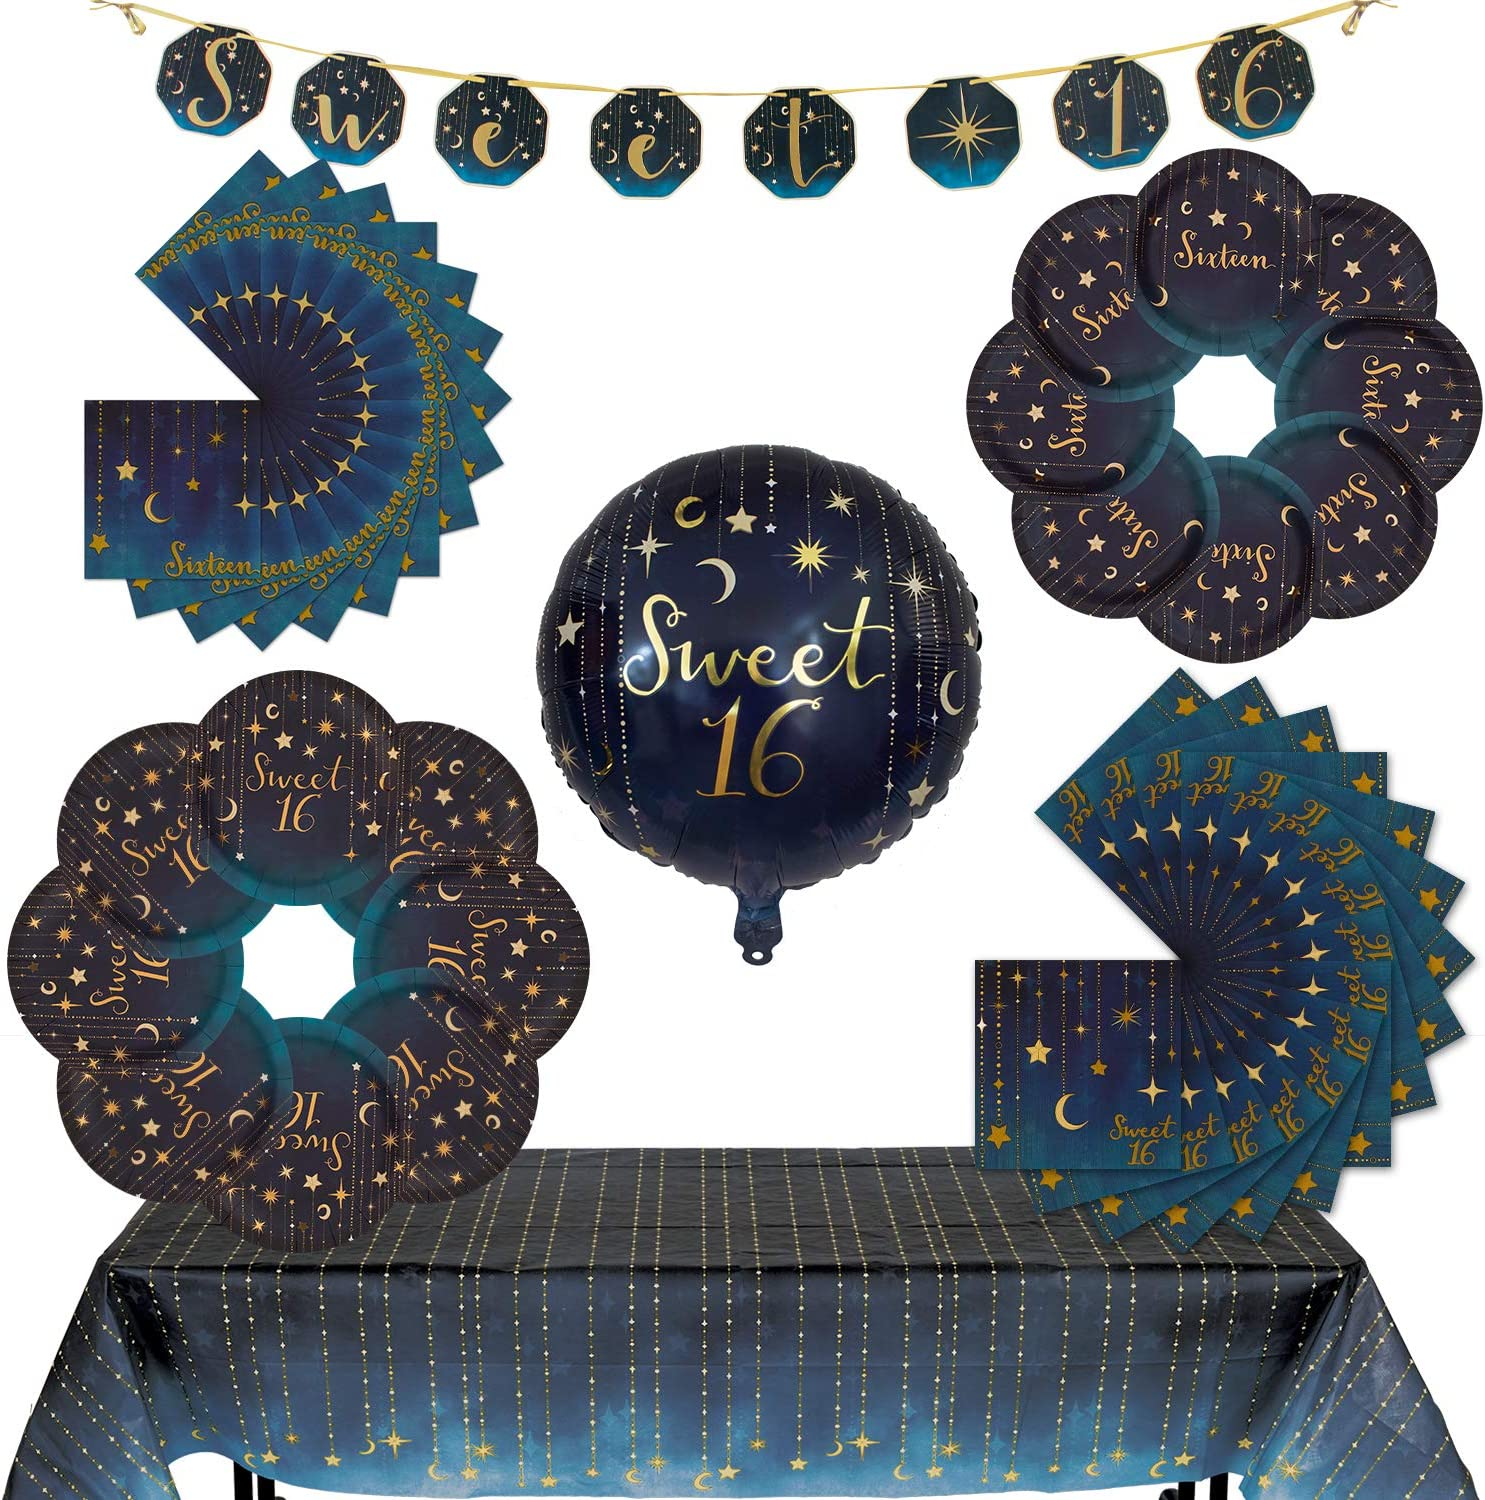 Havercamp Starry Night Sweet 16 Party Bundle | Dinner & Dessert Plates, Luncheon & Beverage Napkins, Table Cover, Garland, Mylar Balloon | Great for Girl's 16th Birthday